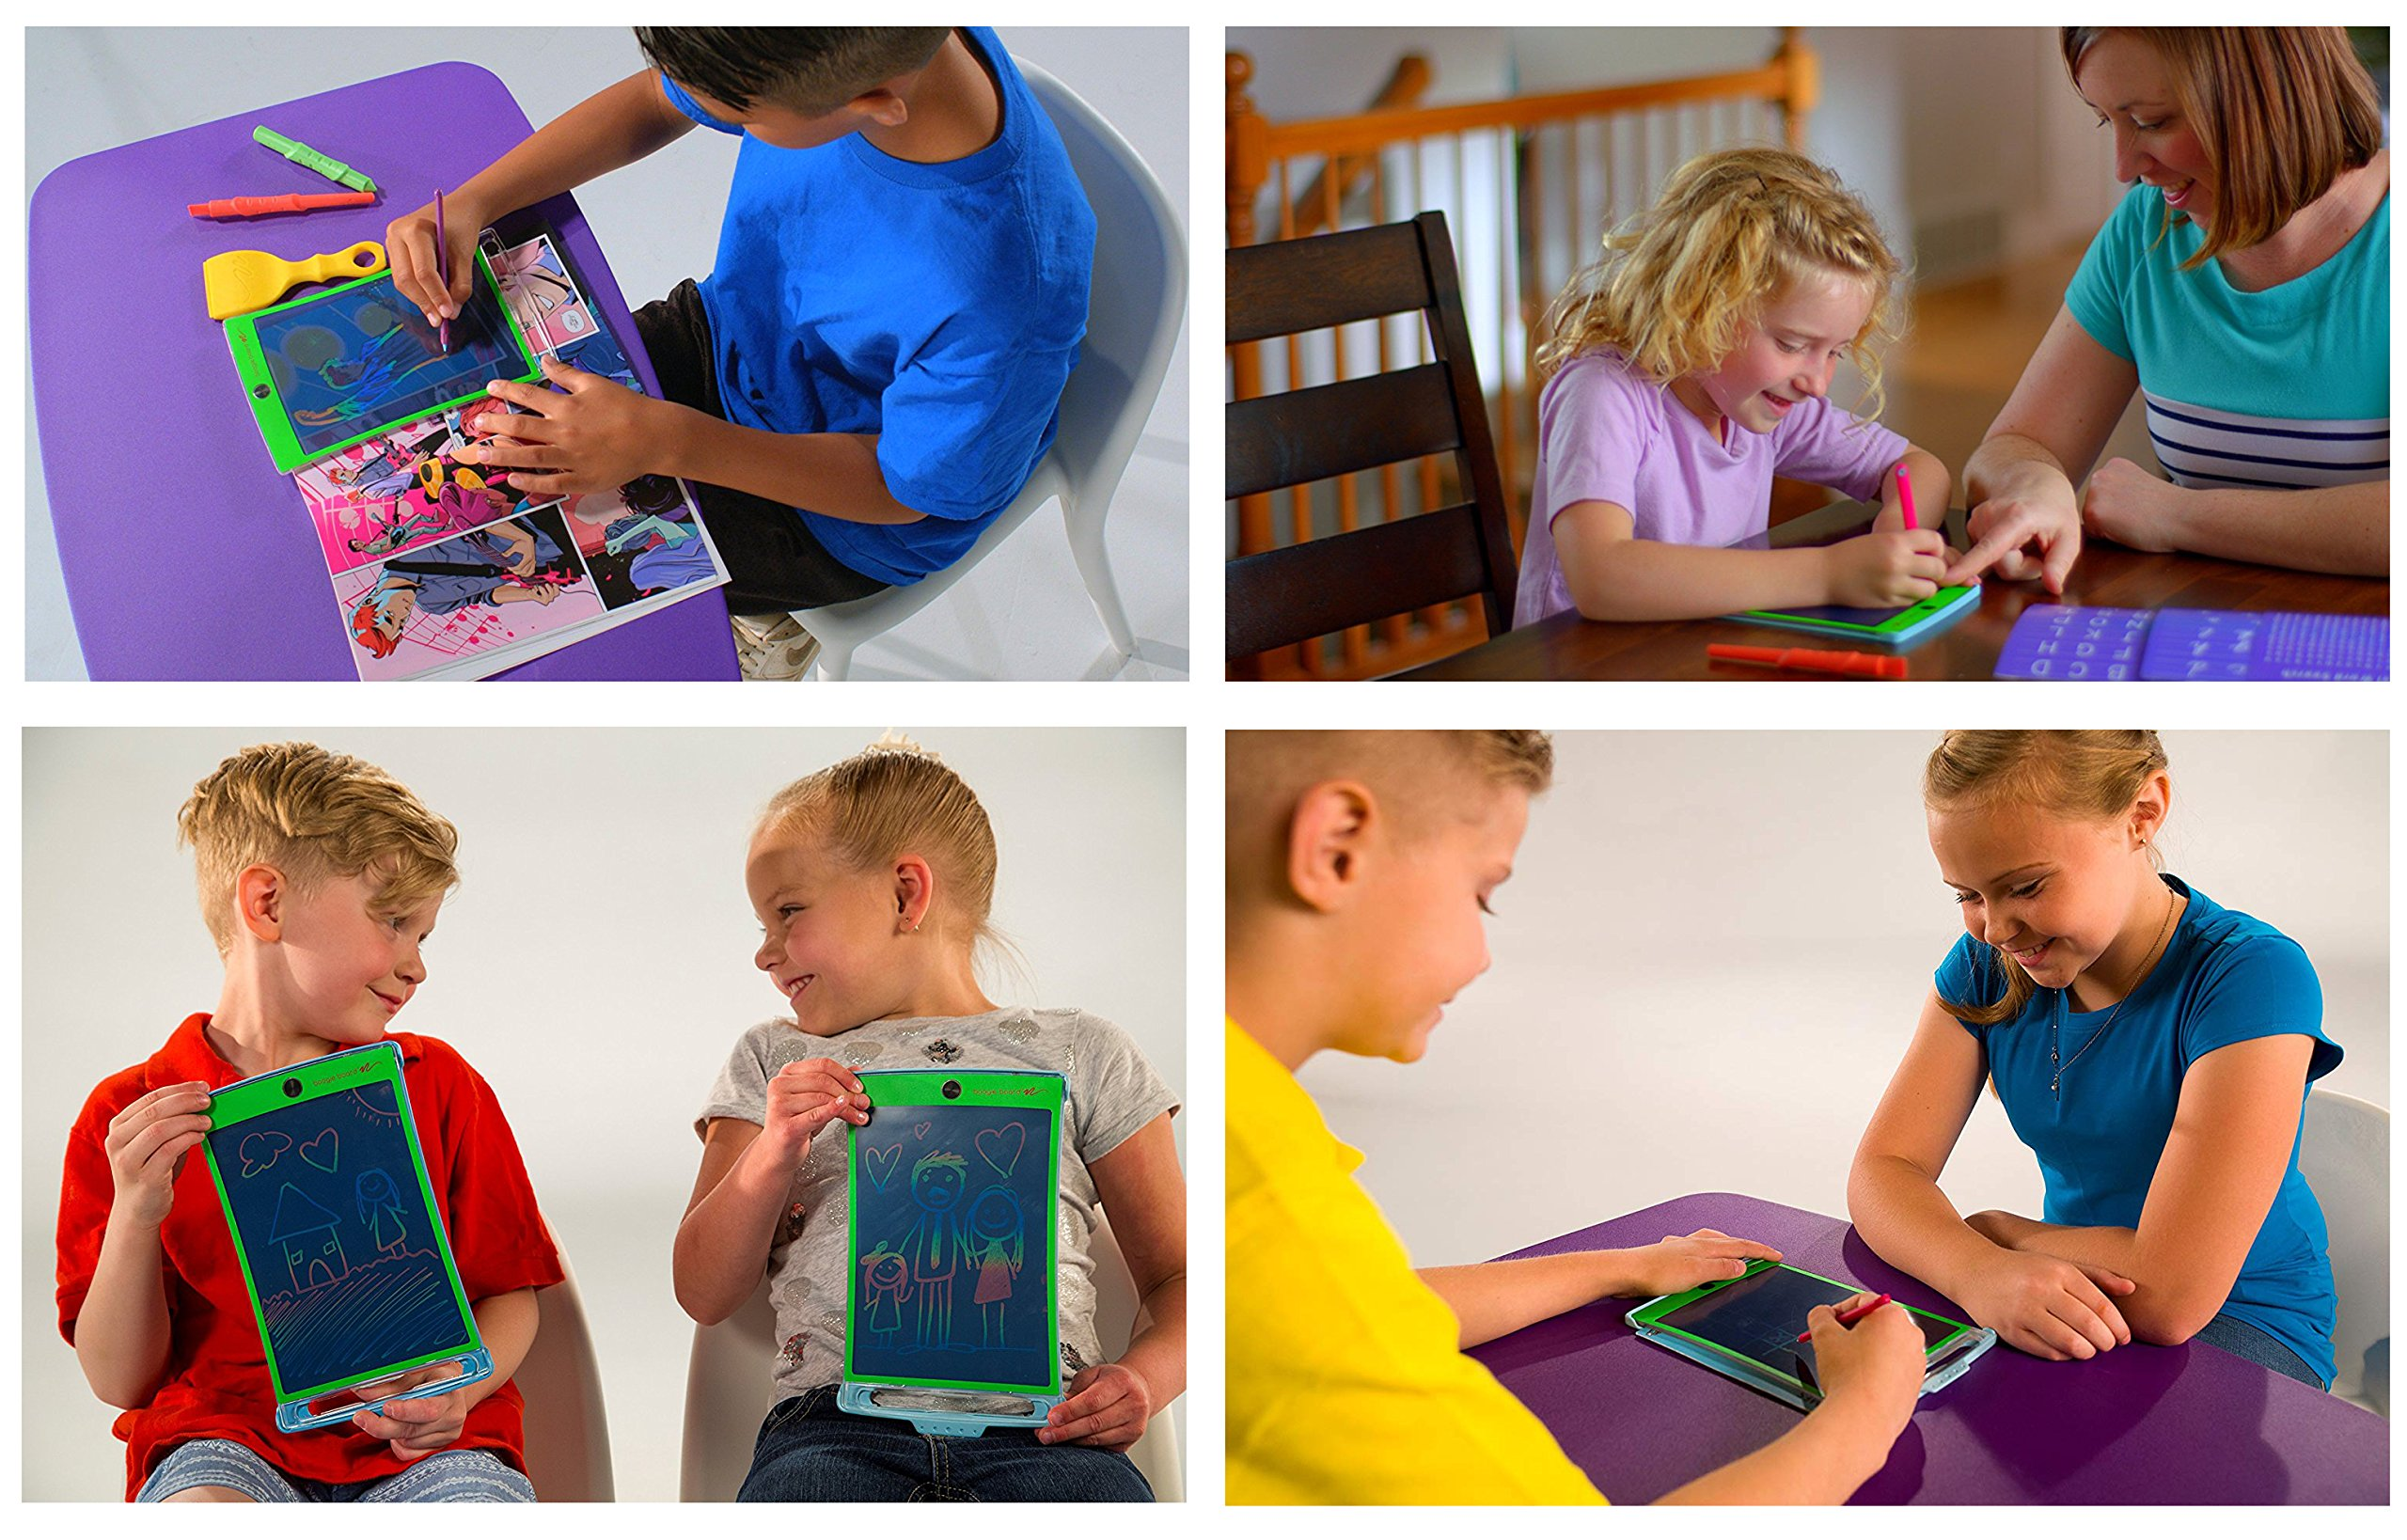 Magic Sketch Deluxe KIT | LCD Writing Board, Drawing, Doodle, Learning Tablet | Includes Protective Cover, 60 Stencils, 4 Styluses, 1 Stamp Roller & 3 Stamps | Kids, Office, School, House, Car Rides by Boogie Board (Image #5)